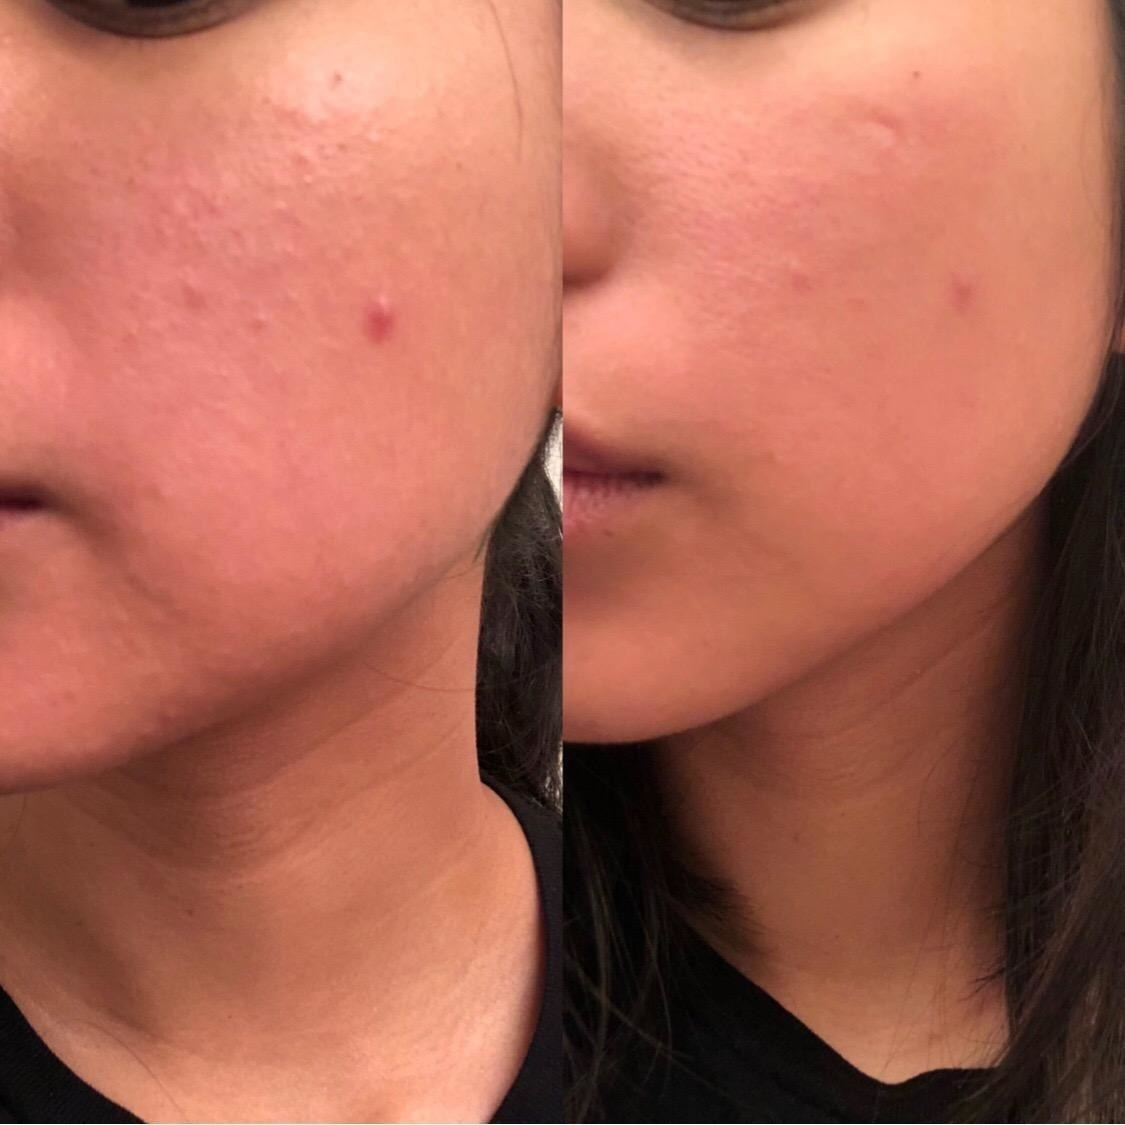 reviewer's bumpy skin before, then smoother texture and skin after using roller